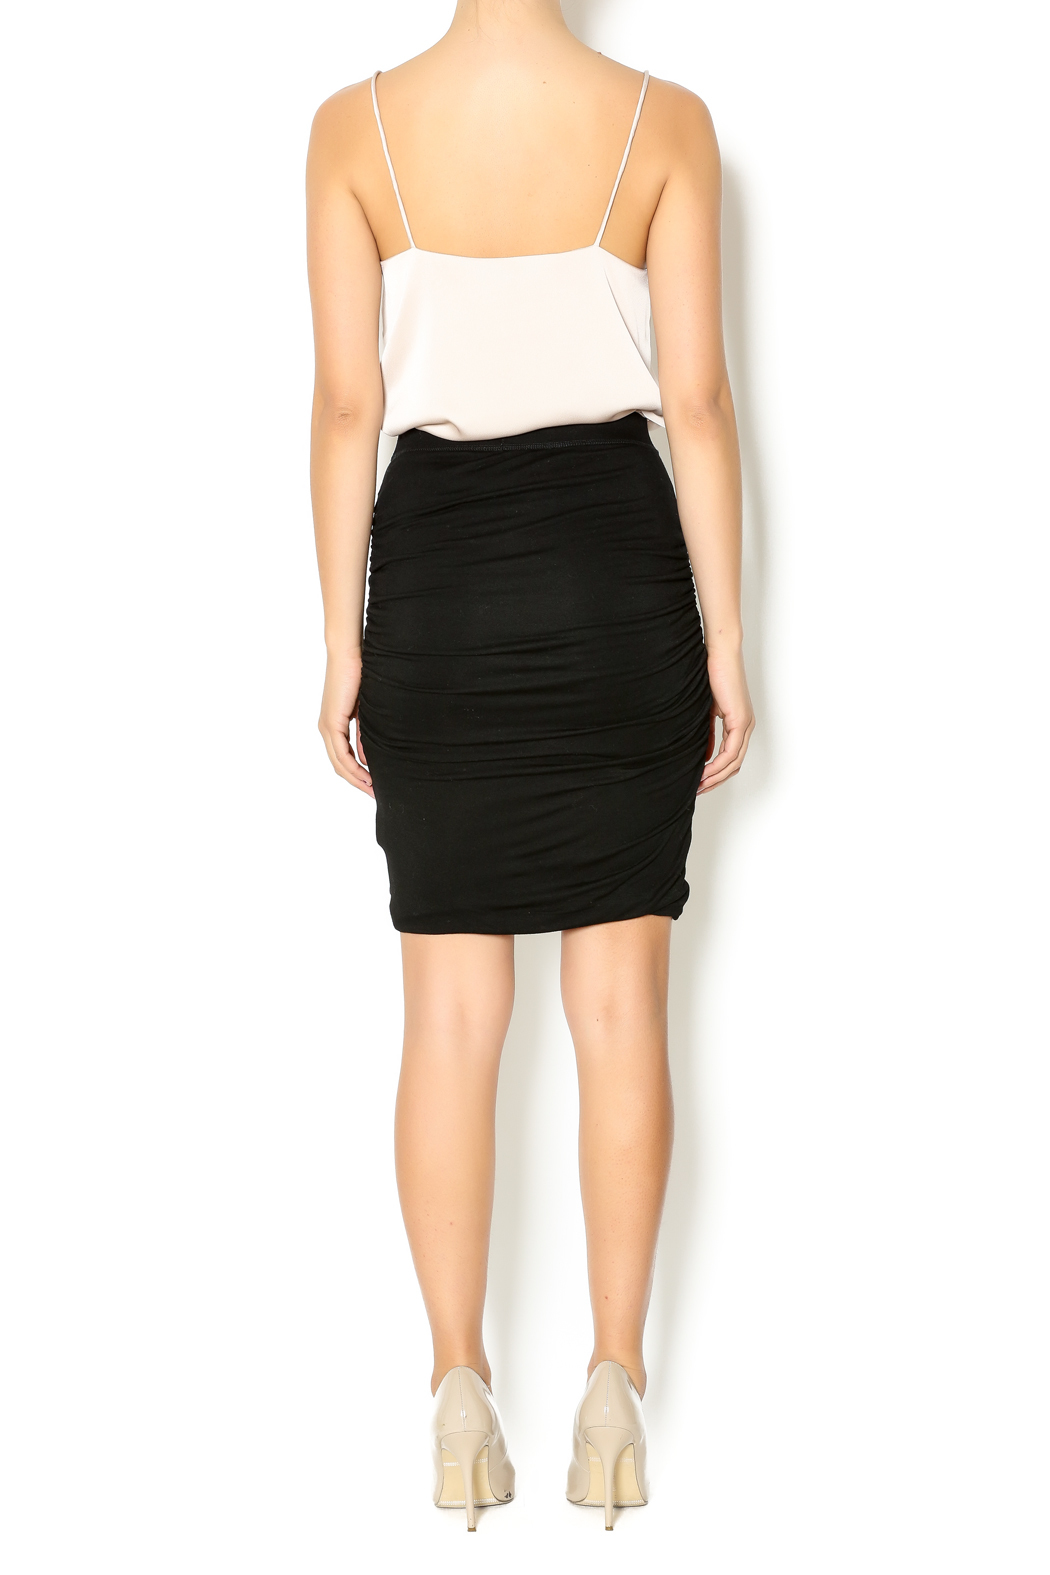 Bishop + Young Black Ruched Skirt - Side Cropped Image